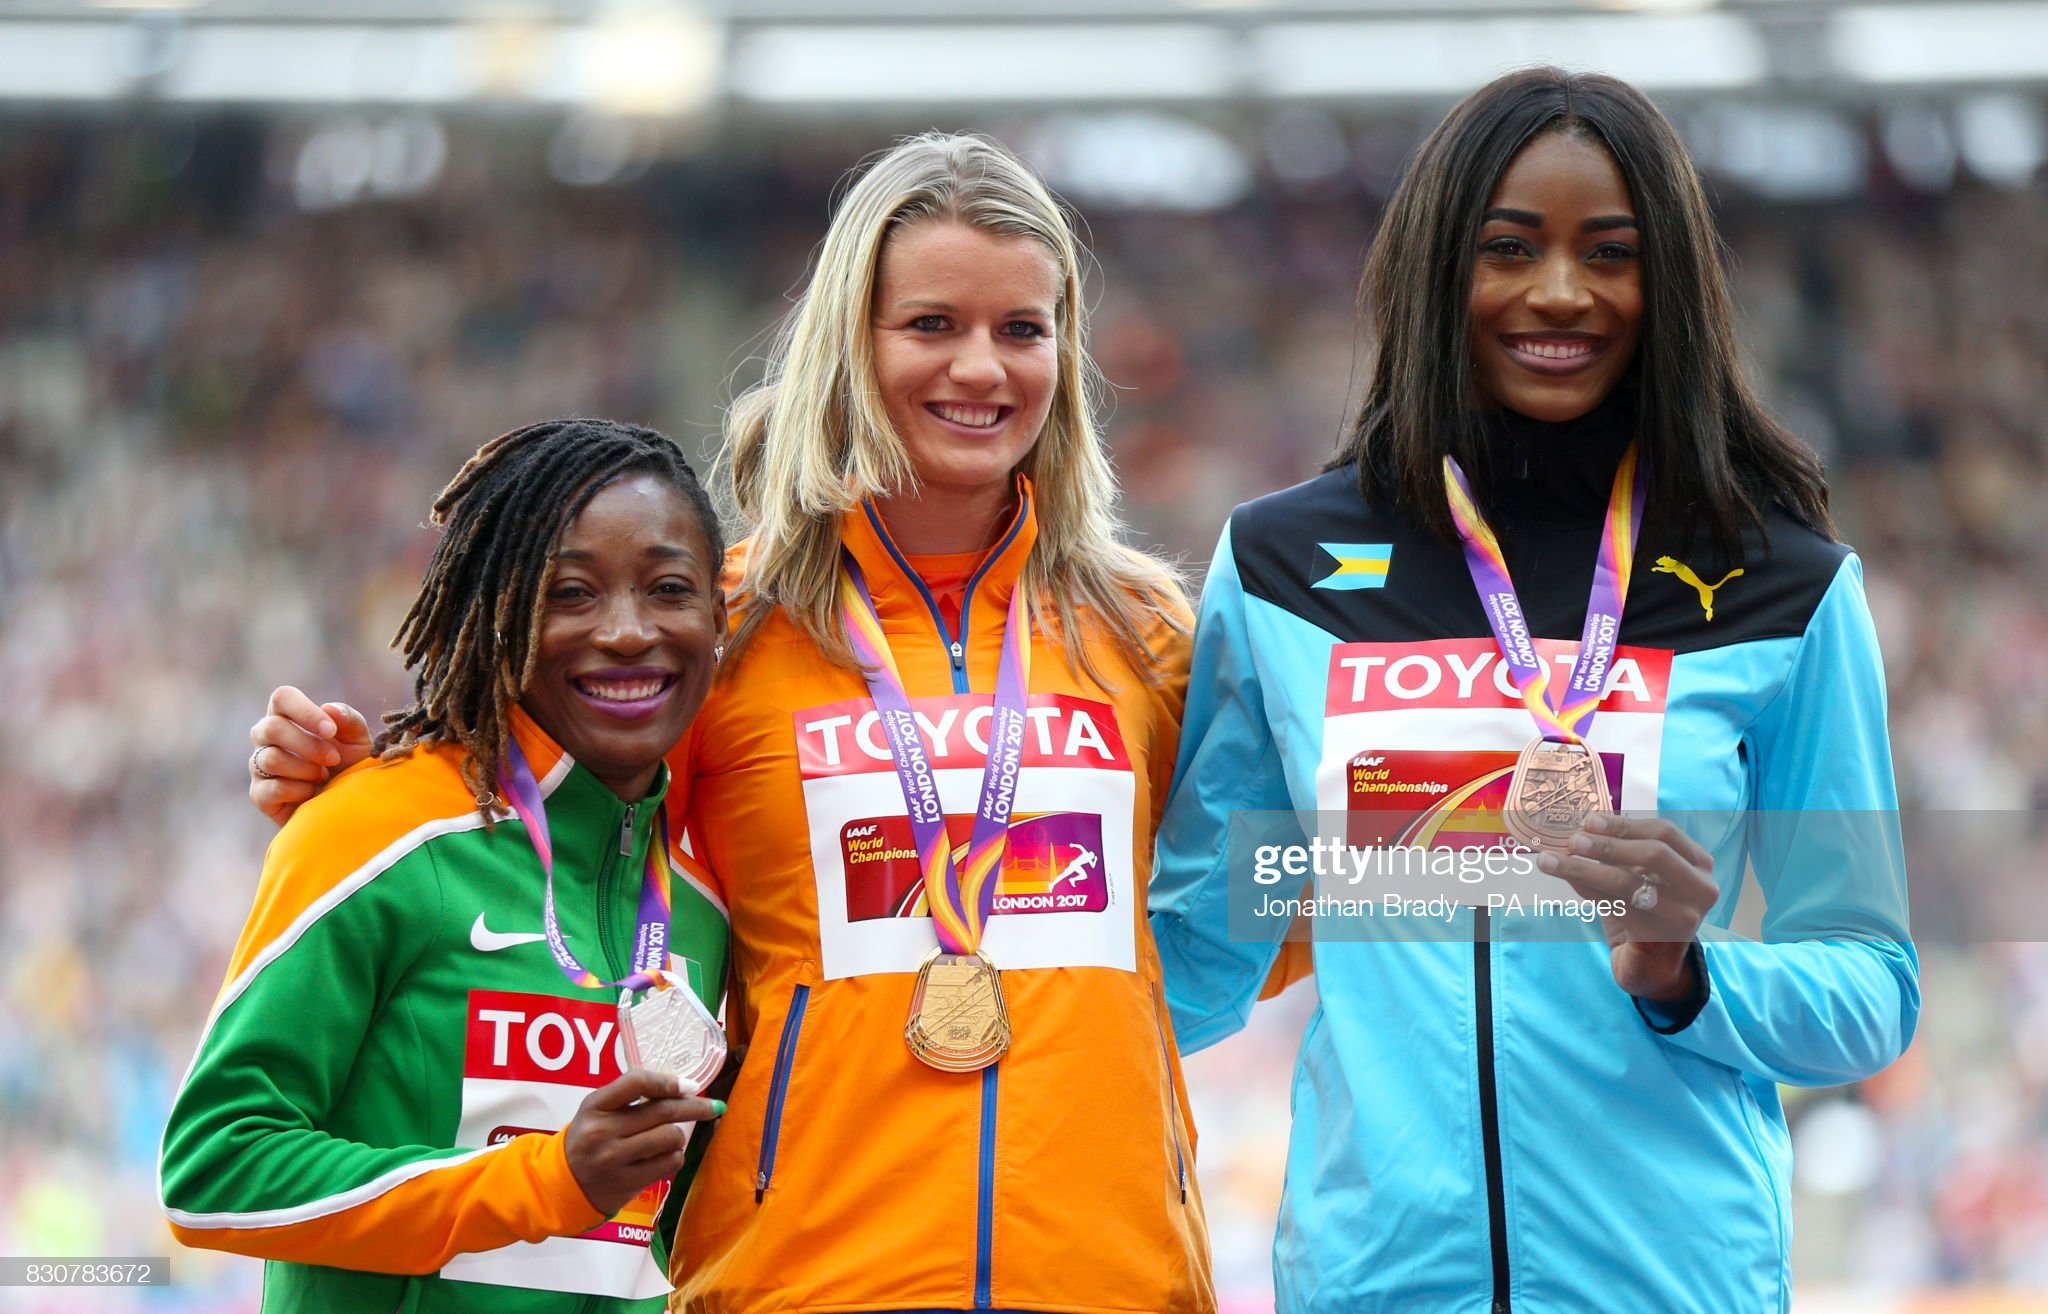 ¿Cuánto mide Shaunae Miller-Uibo? - Real height Netherlands-dafne-schippers-celebrates-with-the-gold-medal-ivory-ta-picture-id830783672?s=2048x2048